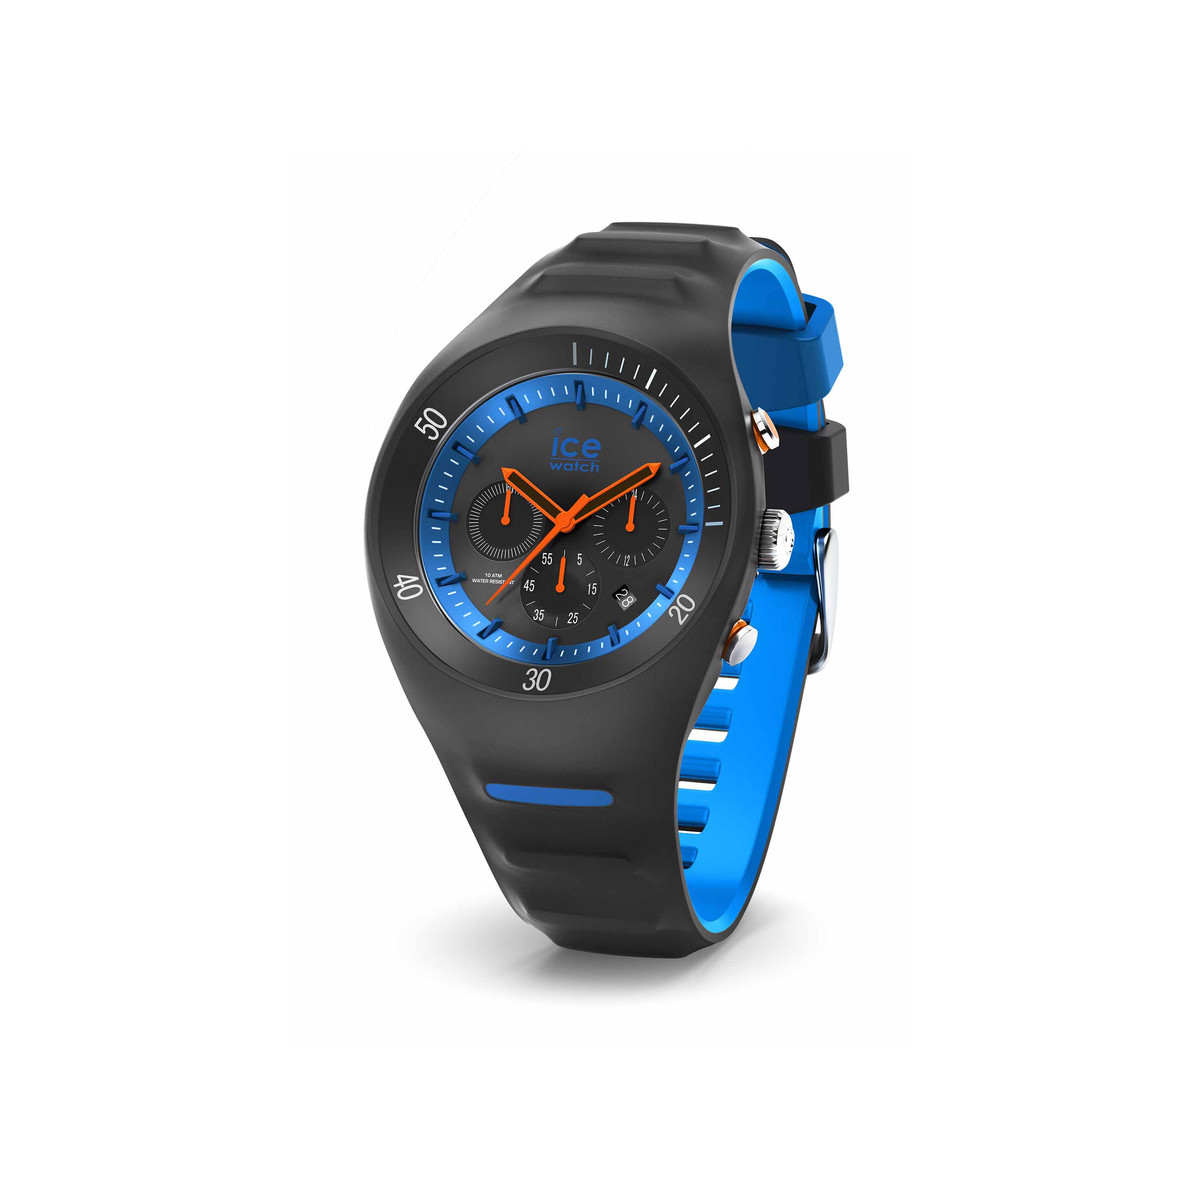 Montre Ice Watch Homme silicone